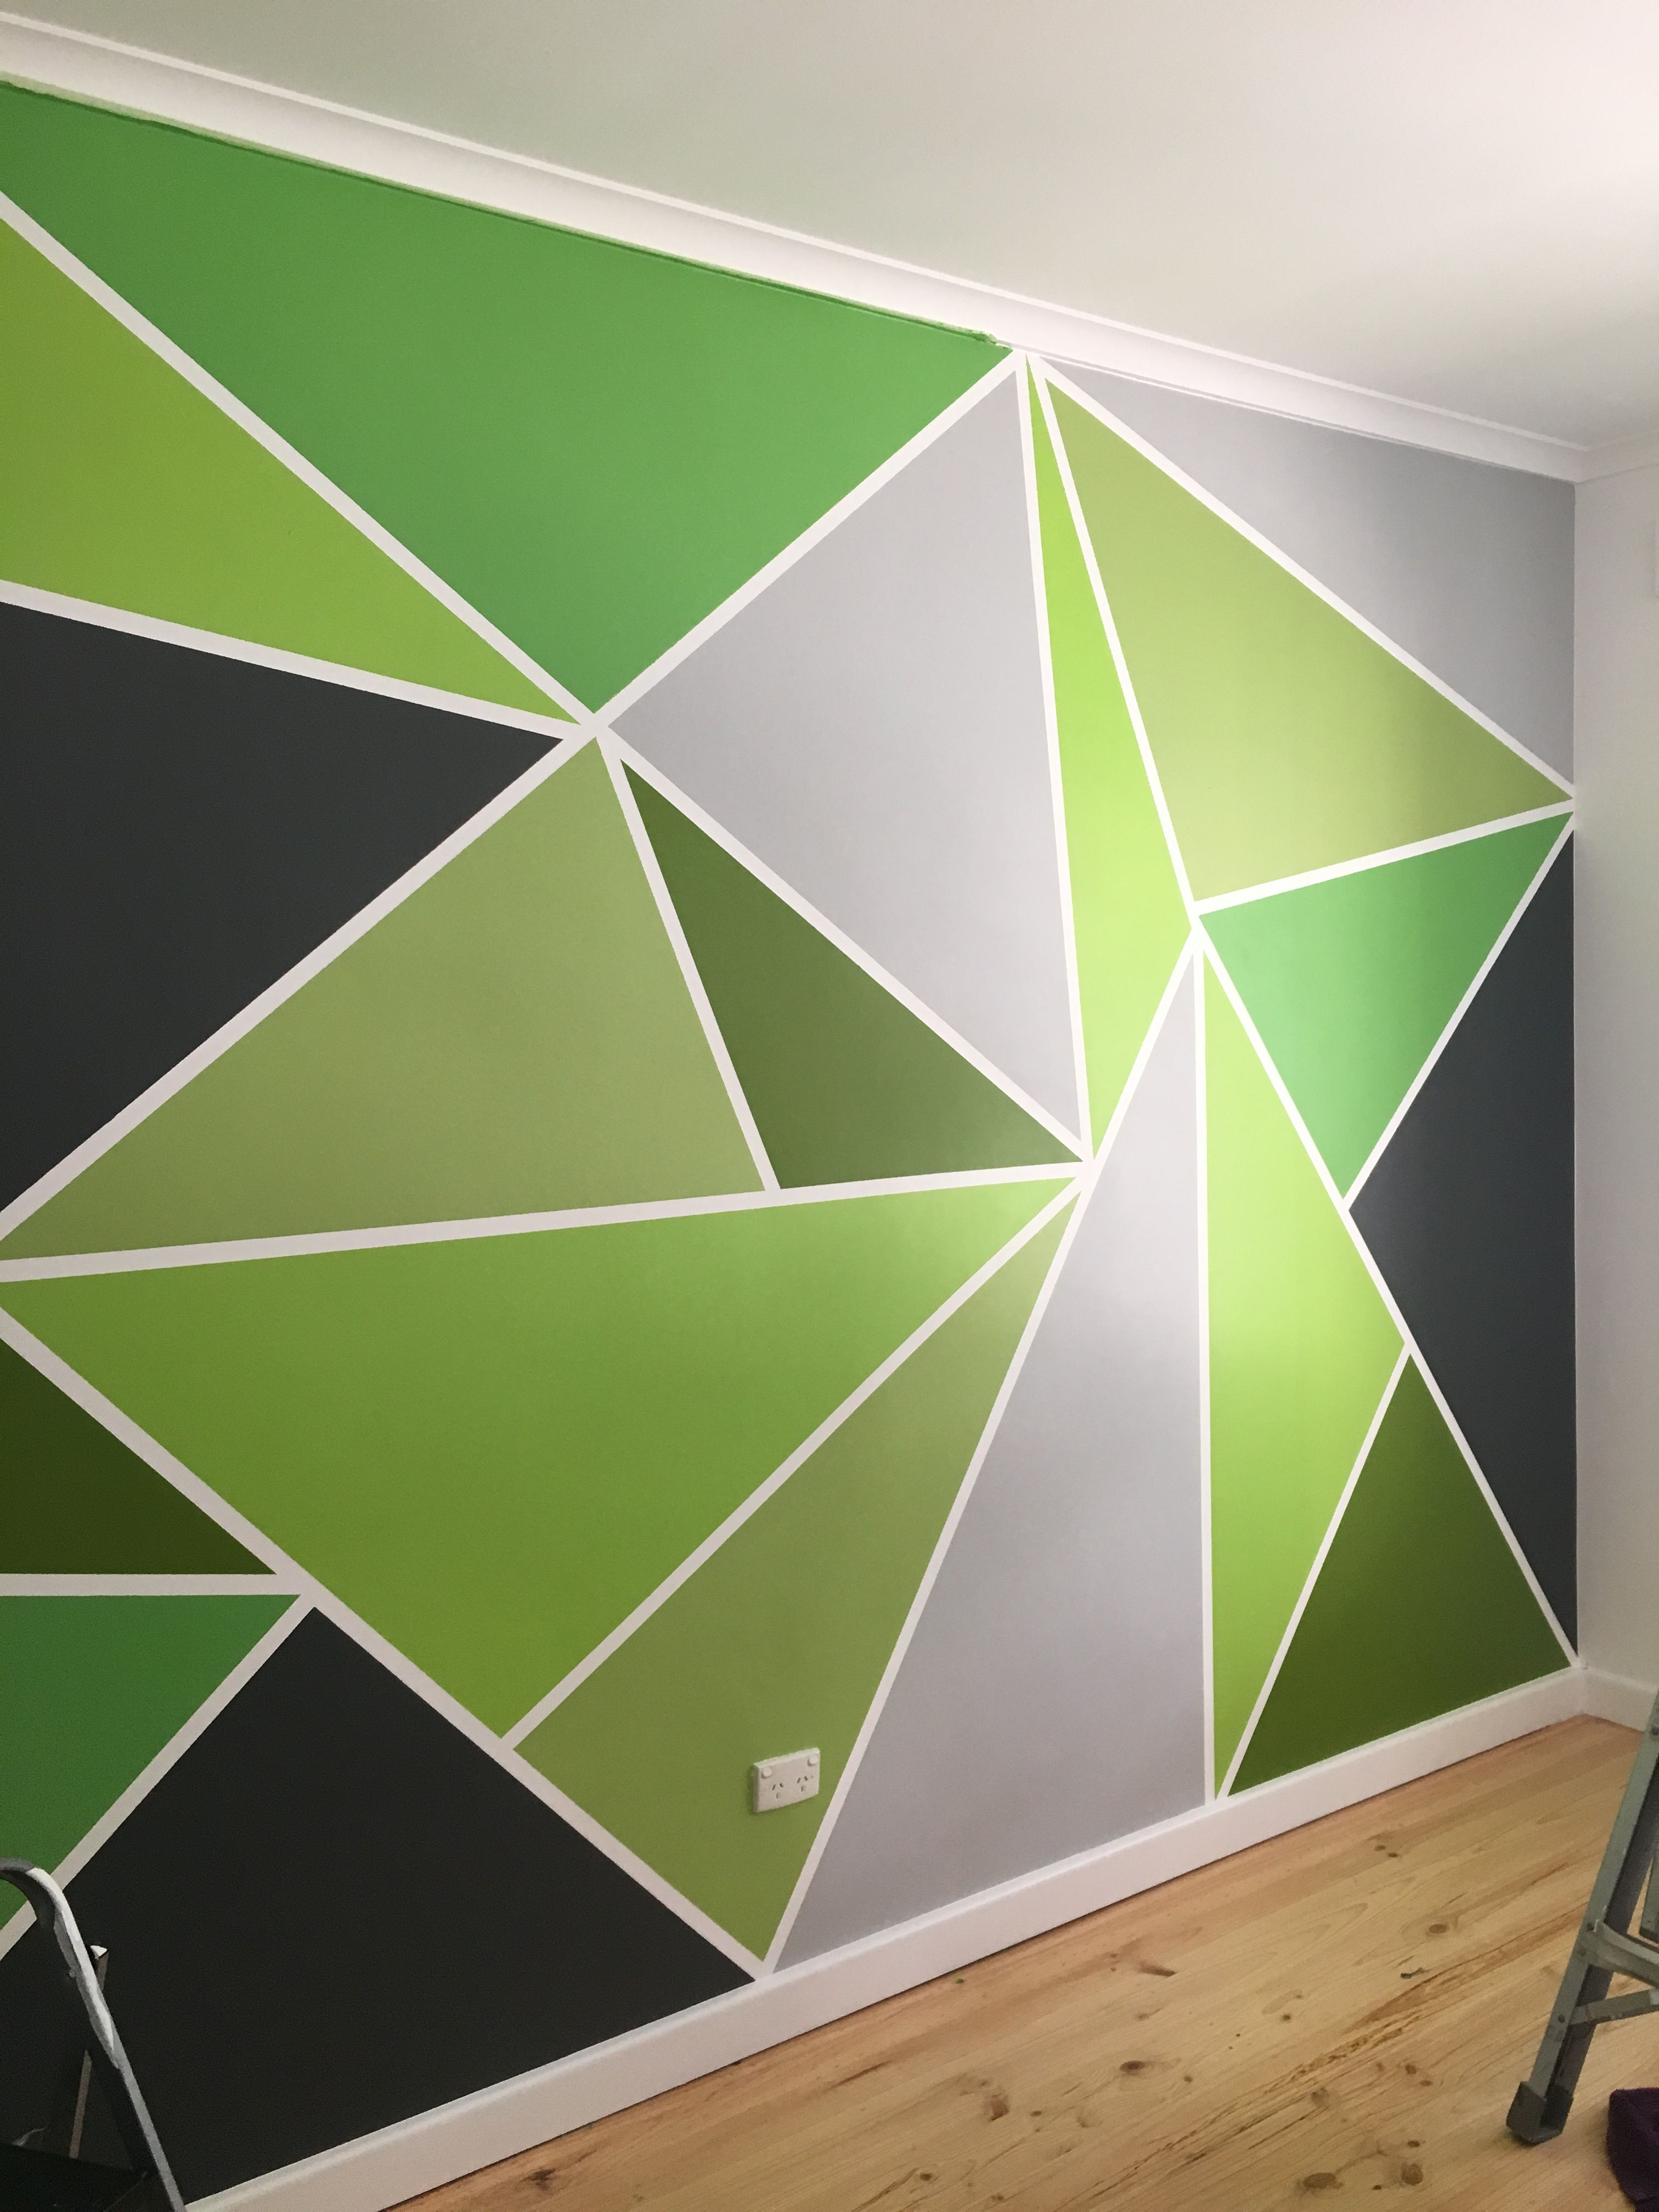 Mr 14 S Bedroom With A New Painted Feature Wall Painted Feature Wall Wall Paint Designs Feature Wall Bedroom